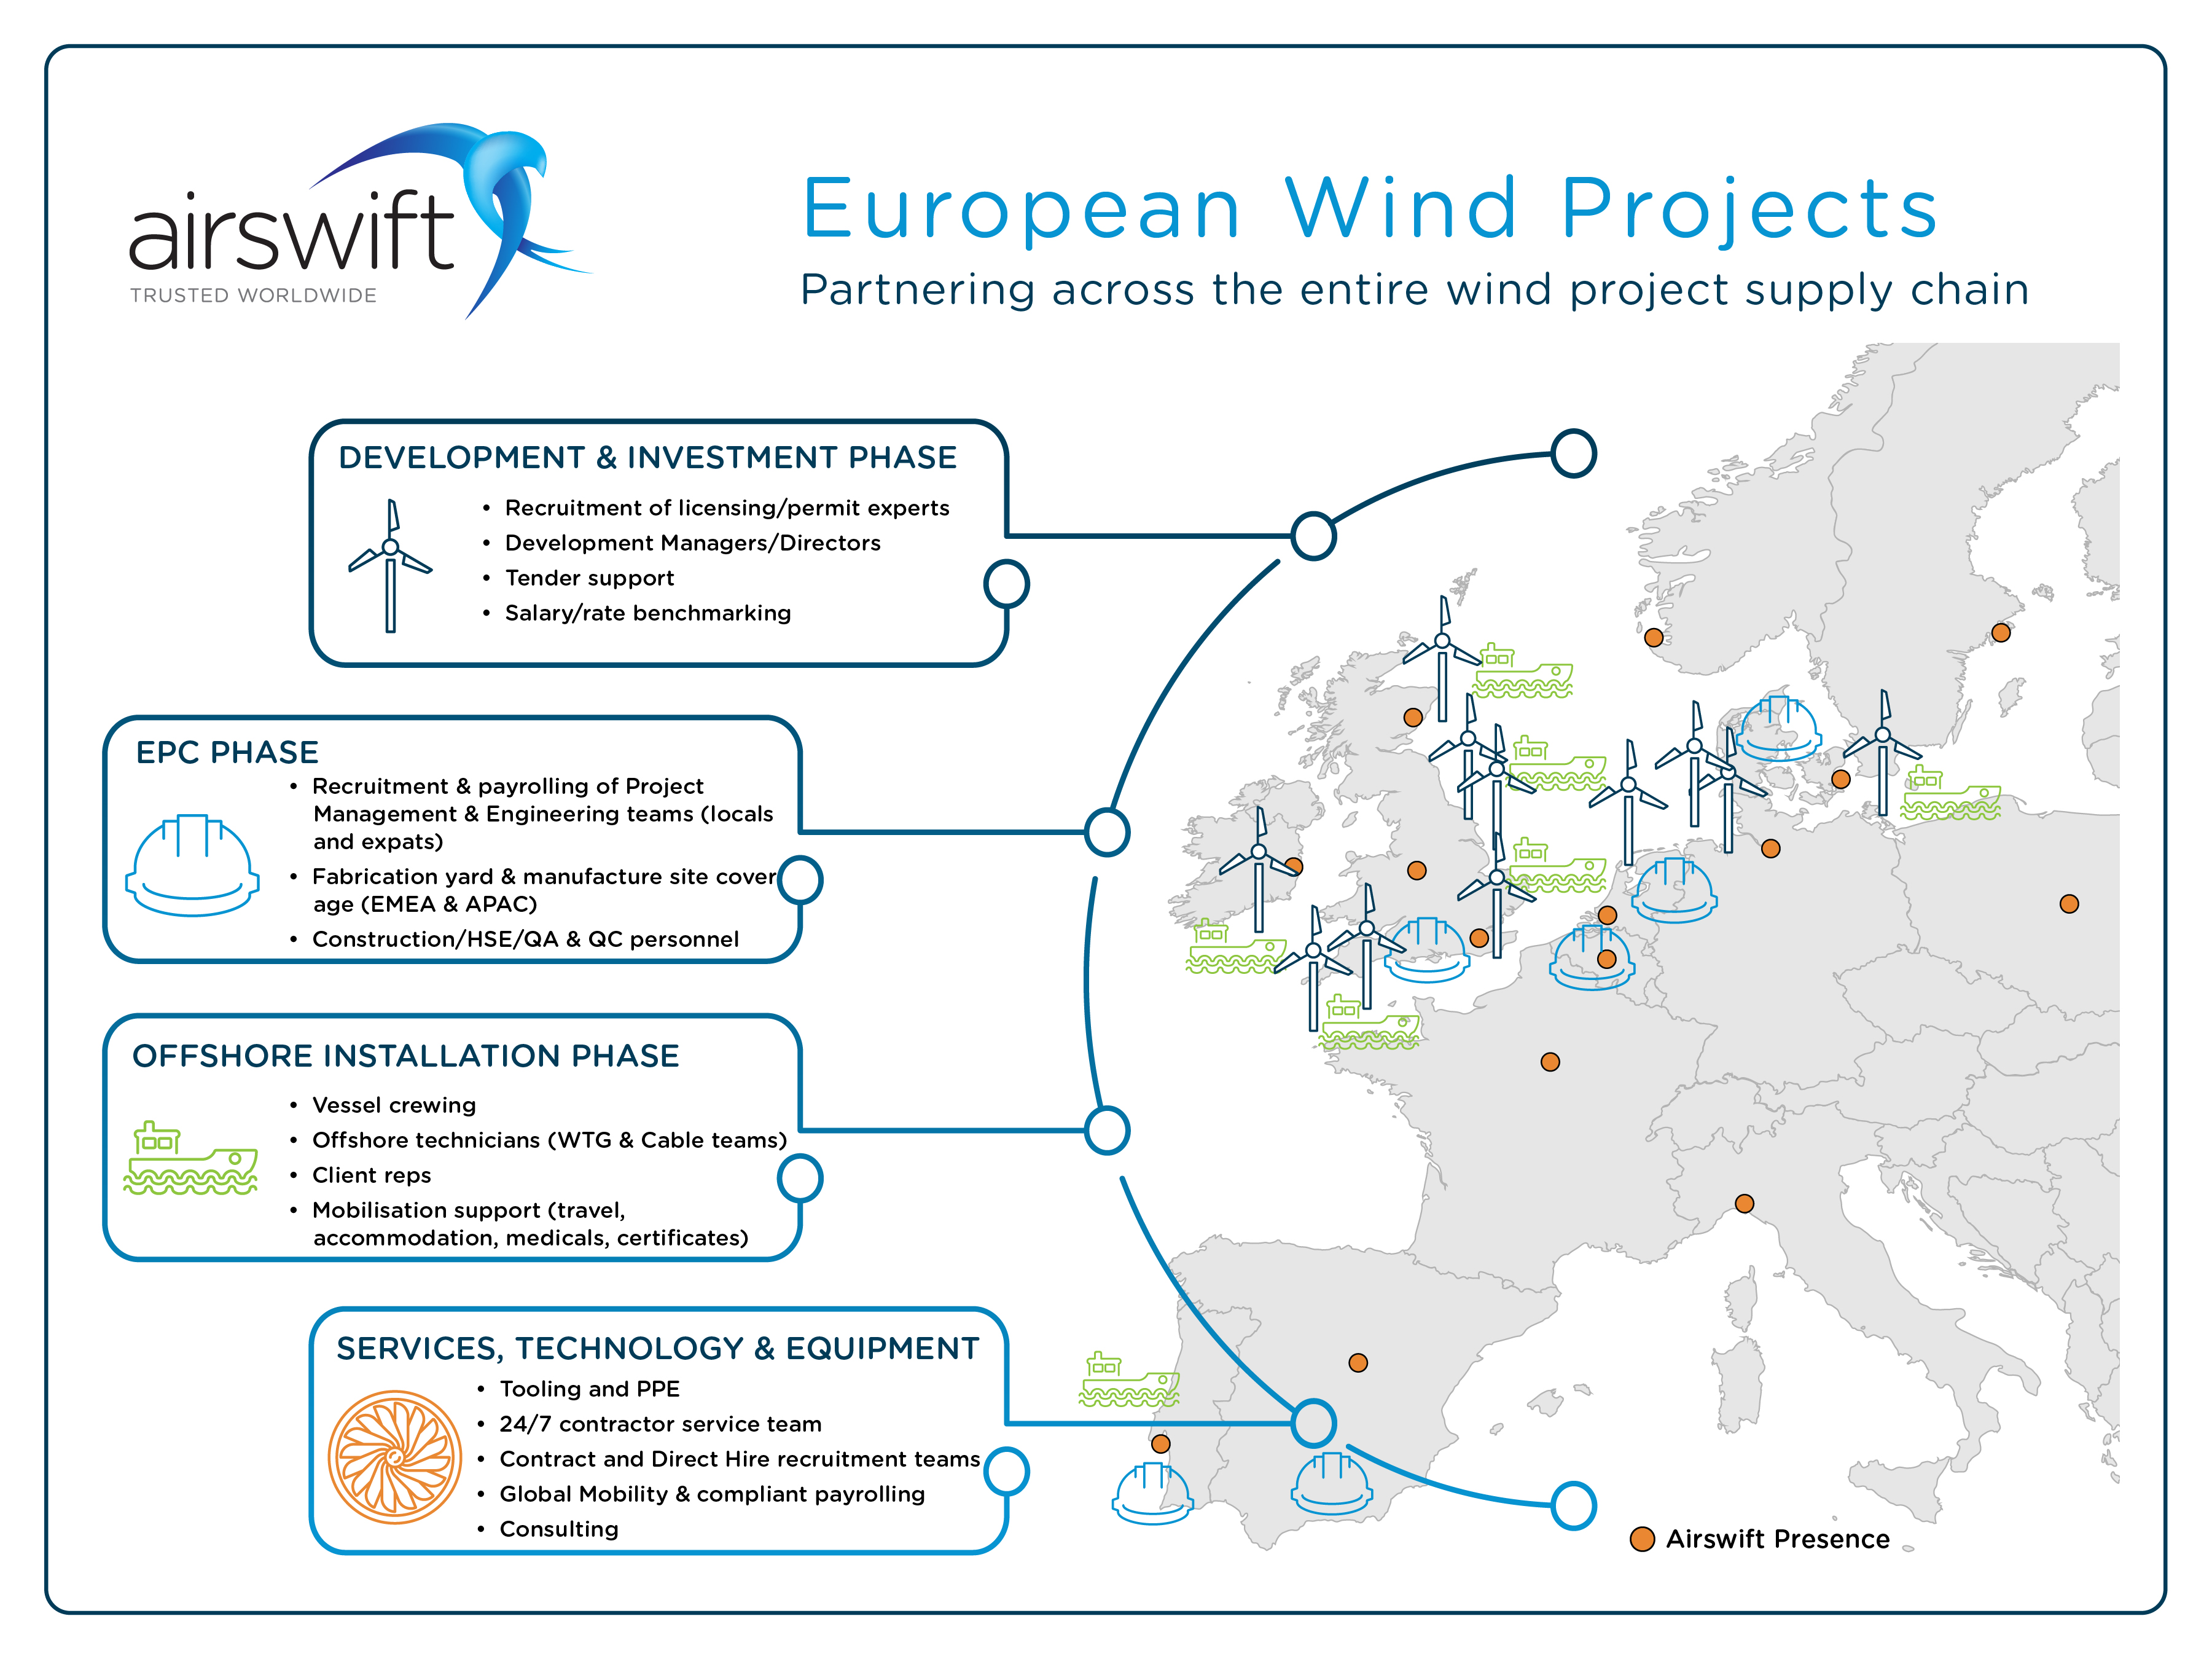 EUROPE-WindProjects